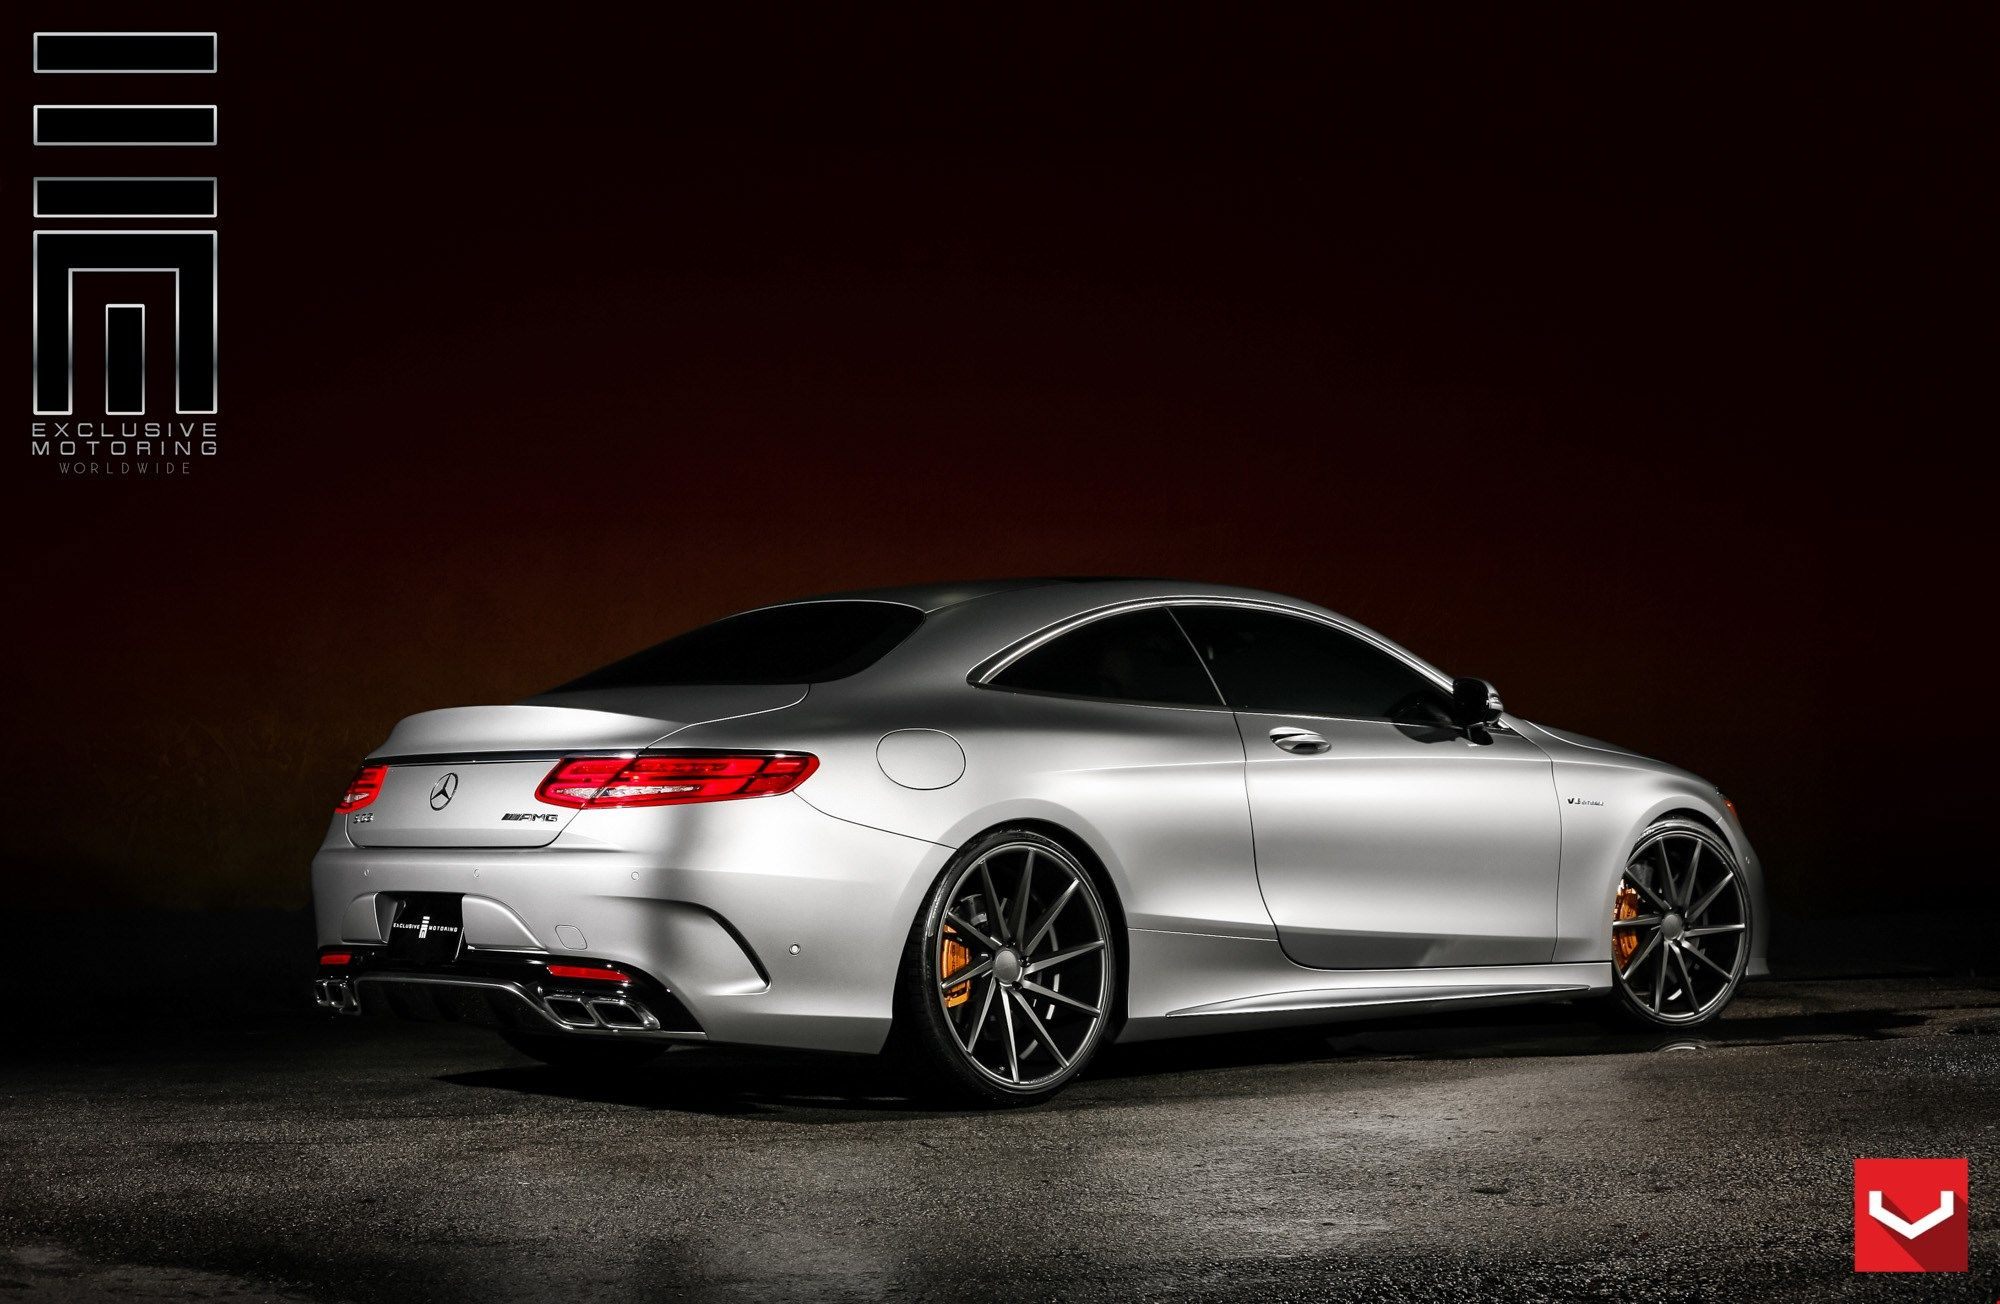 Vossen Wheels Mercedes Benz S Class Coupe Vossen CVT